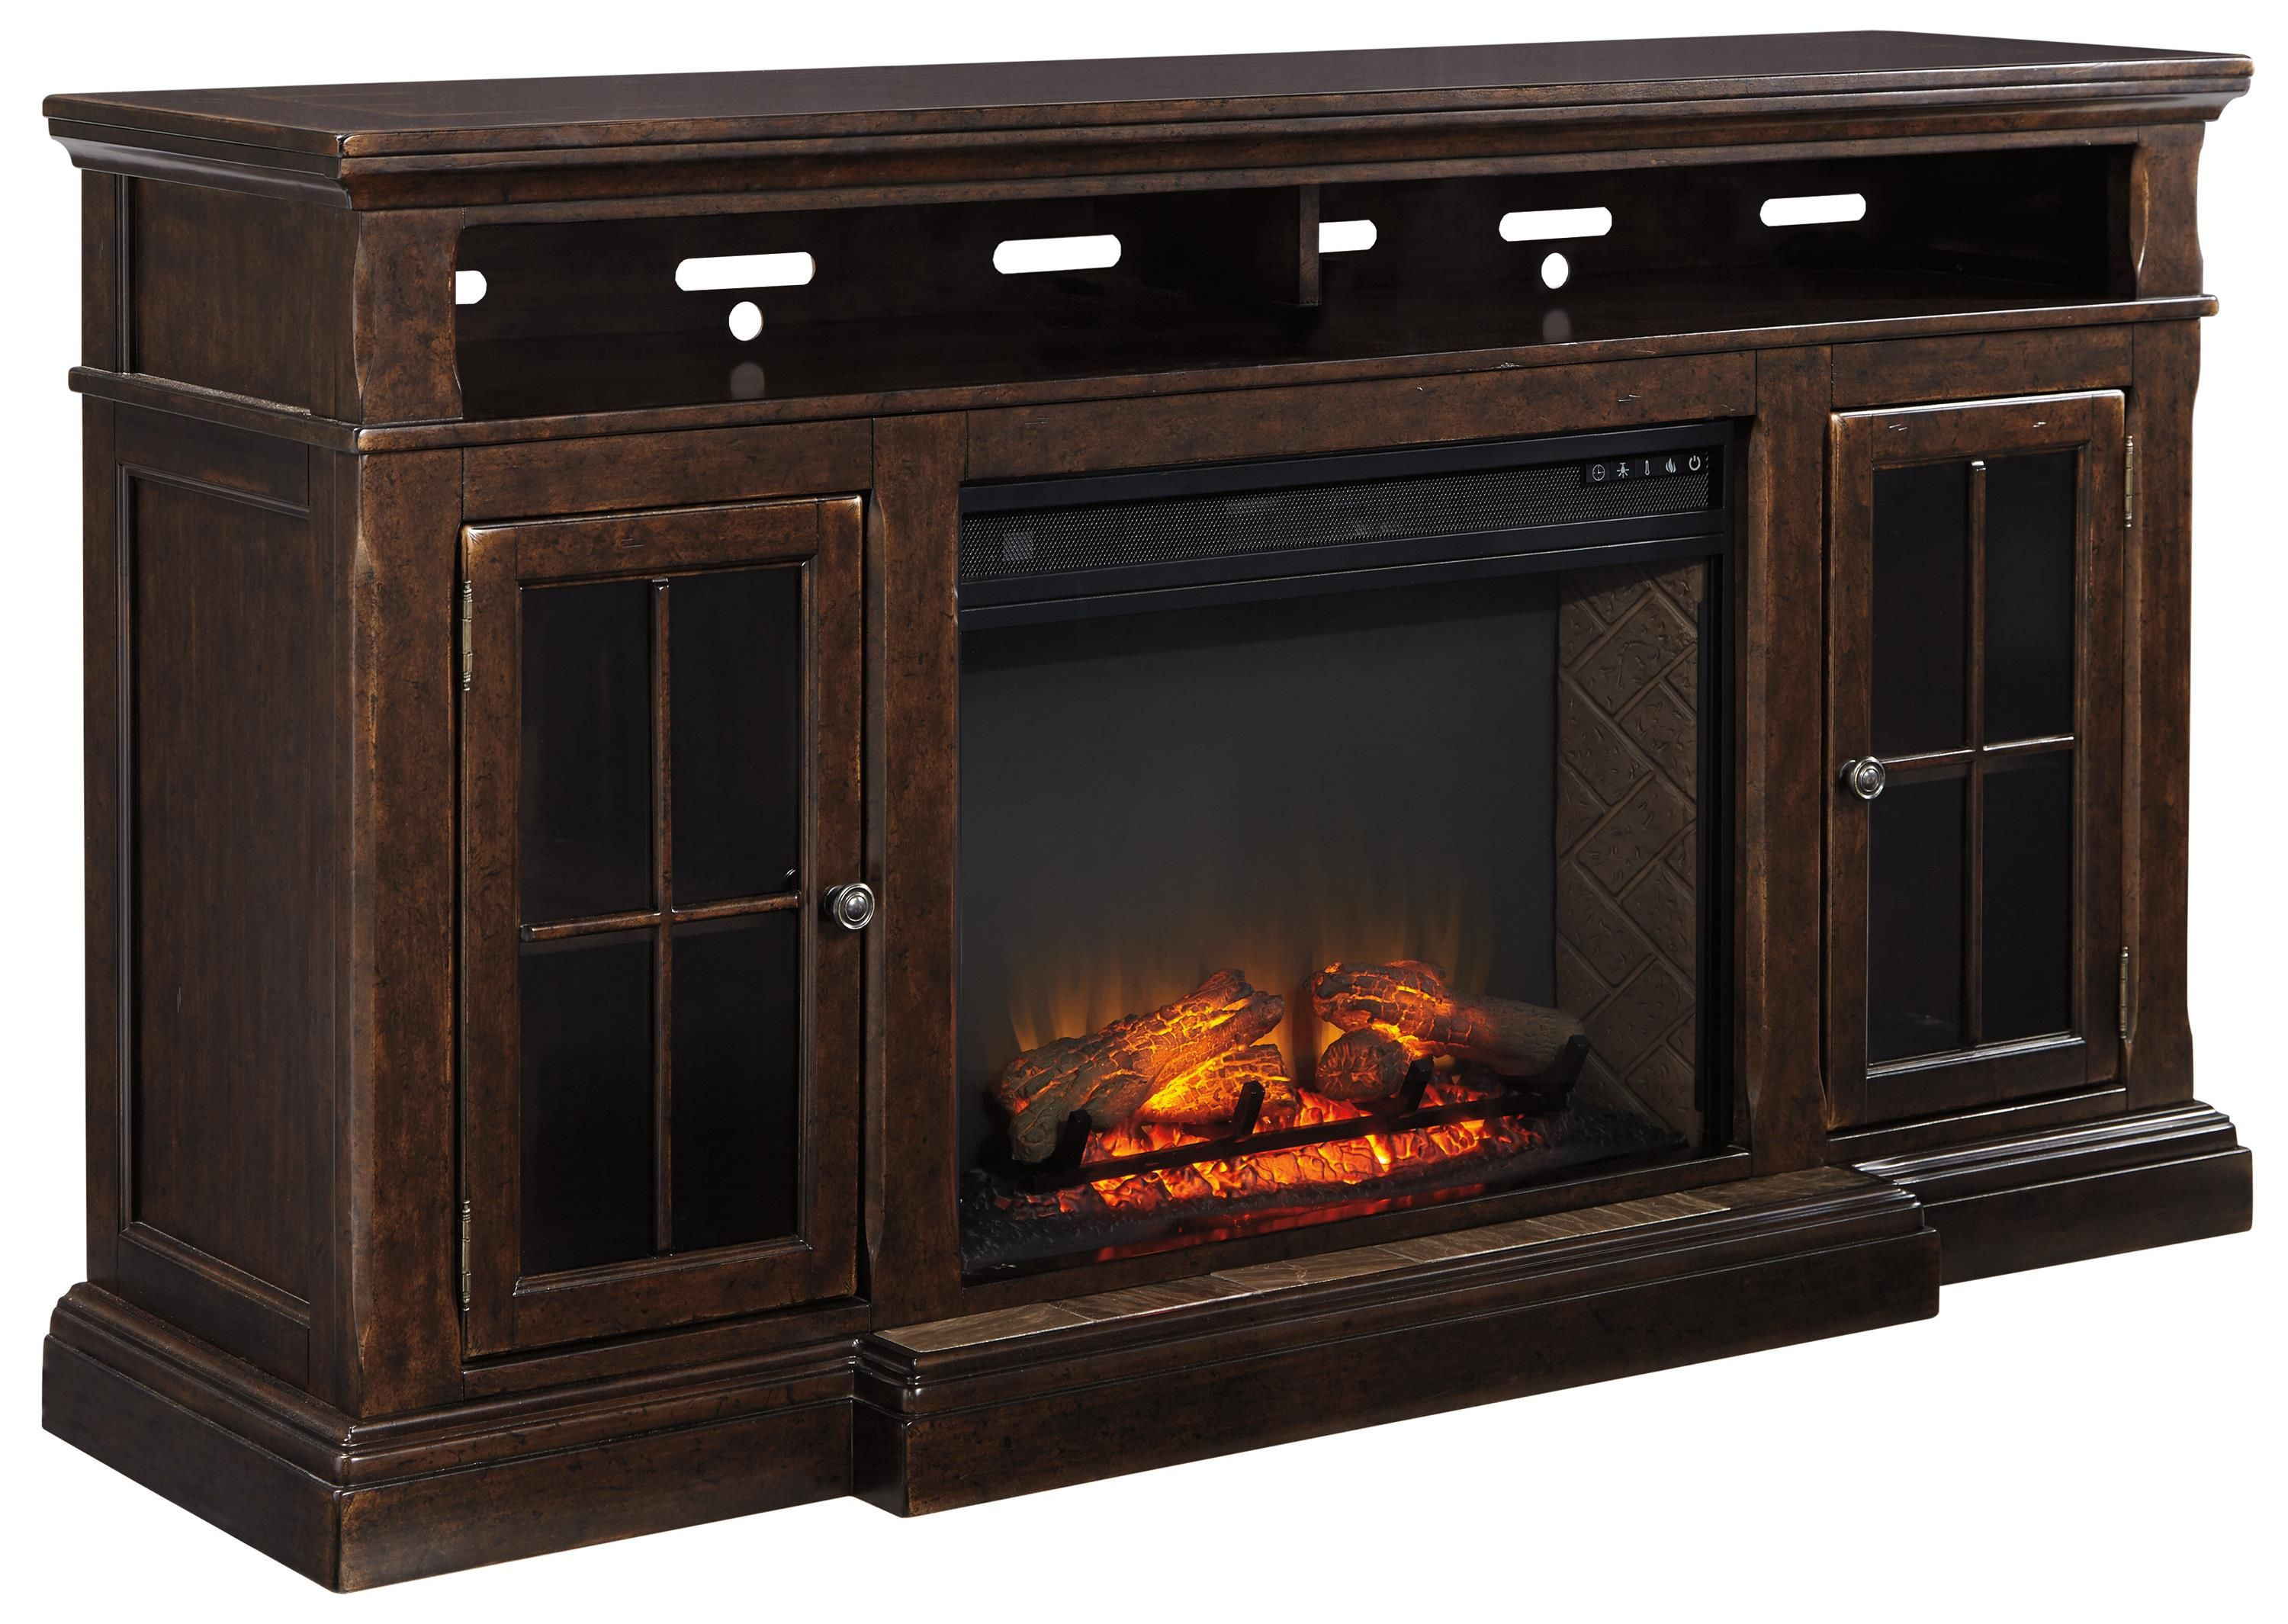 Roddinton Extra Large Tv Stand W Fireplace Insert By Signature